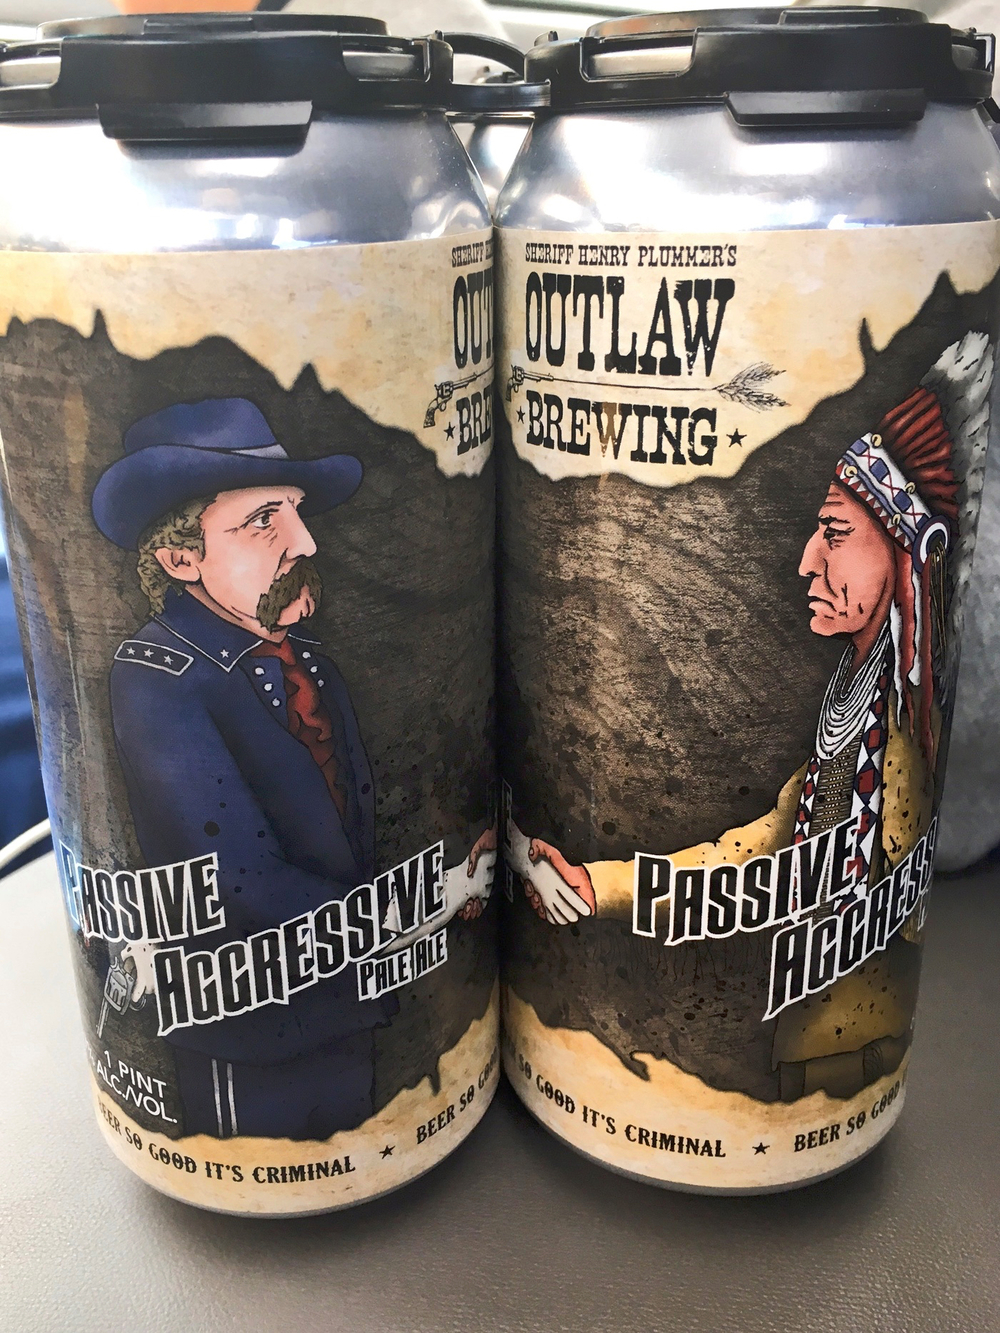 Place the two cans together and you see General Custer shaking hands with Sitting Bull.